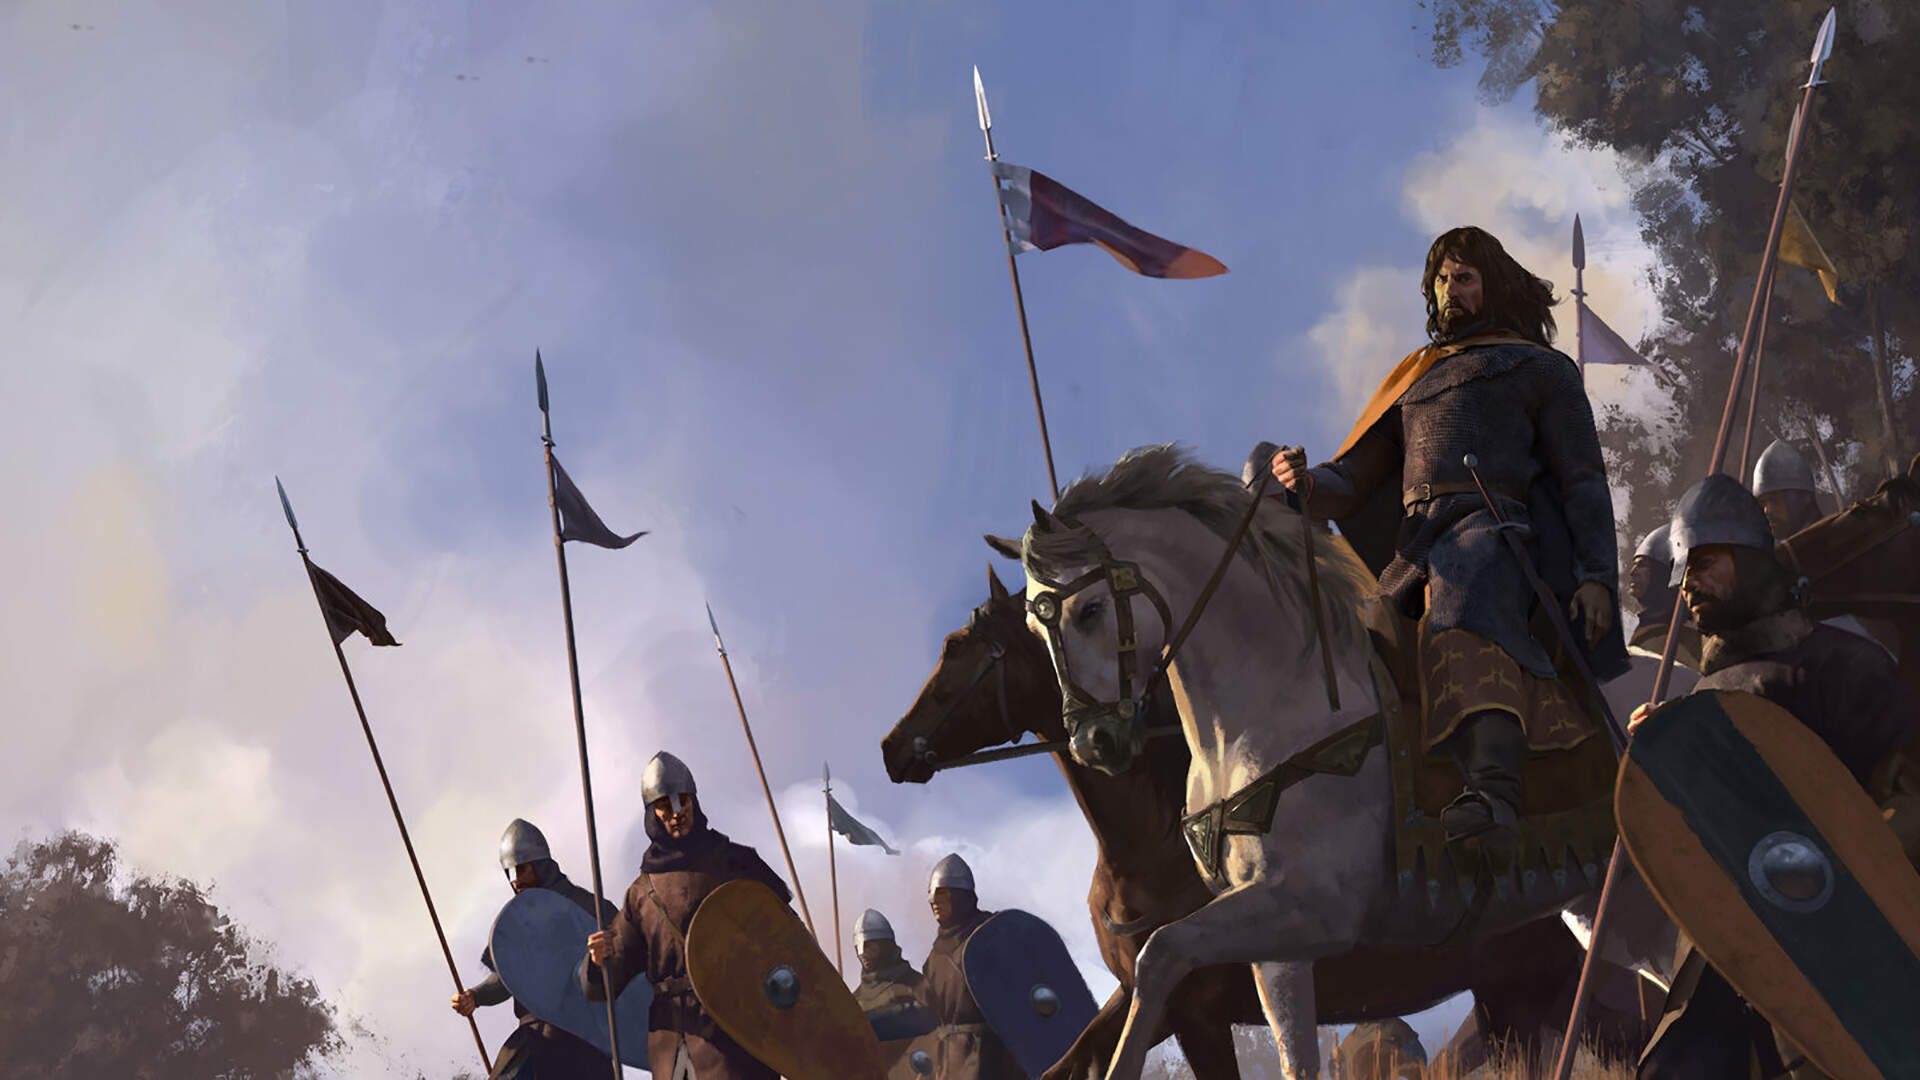 Mount & Blade 2: Bannerlord Has More Depth Than You See in Most Early Access Games